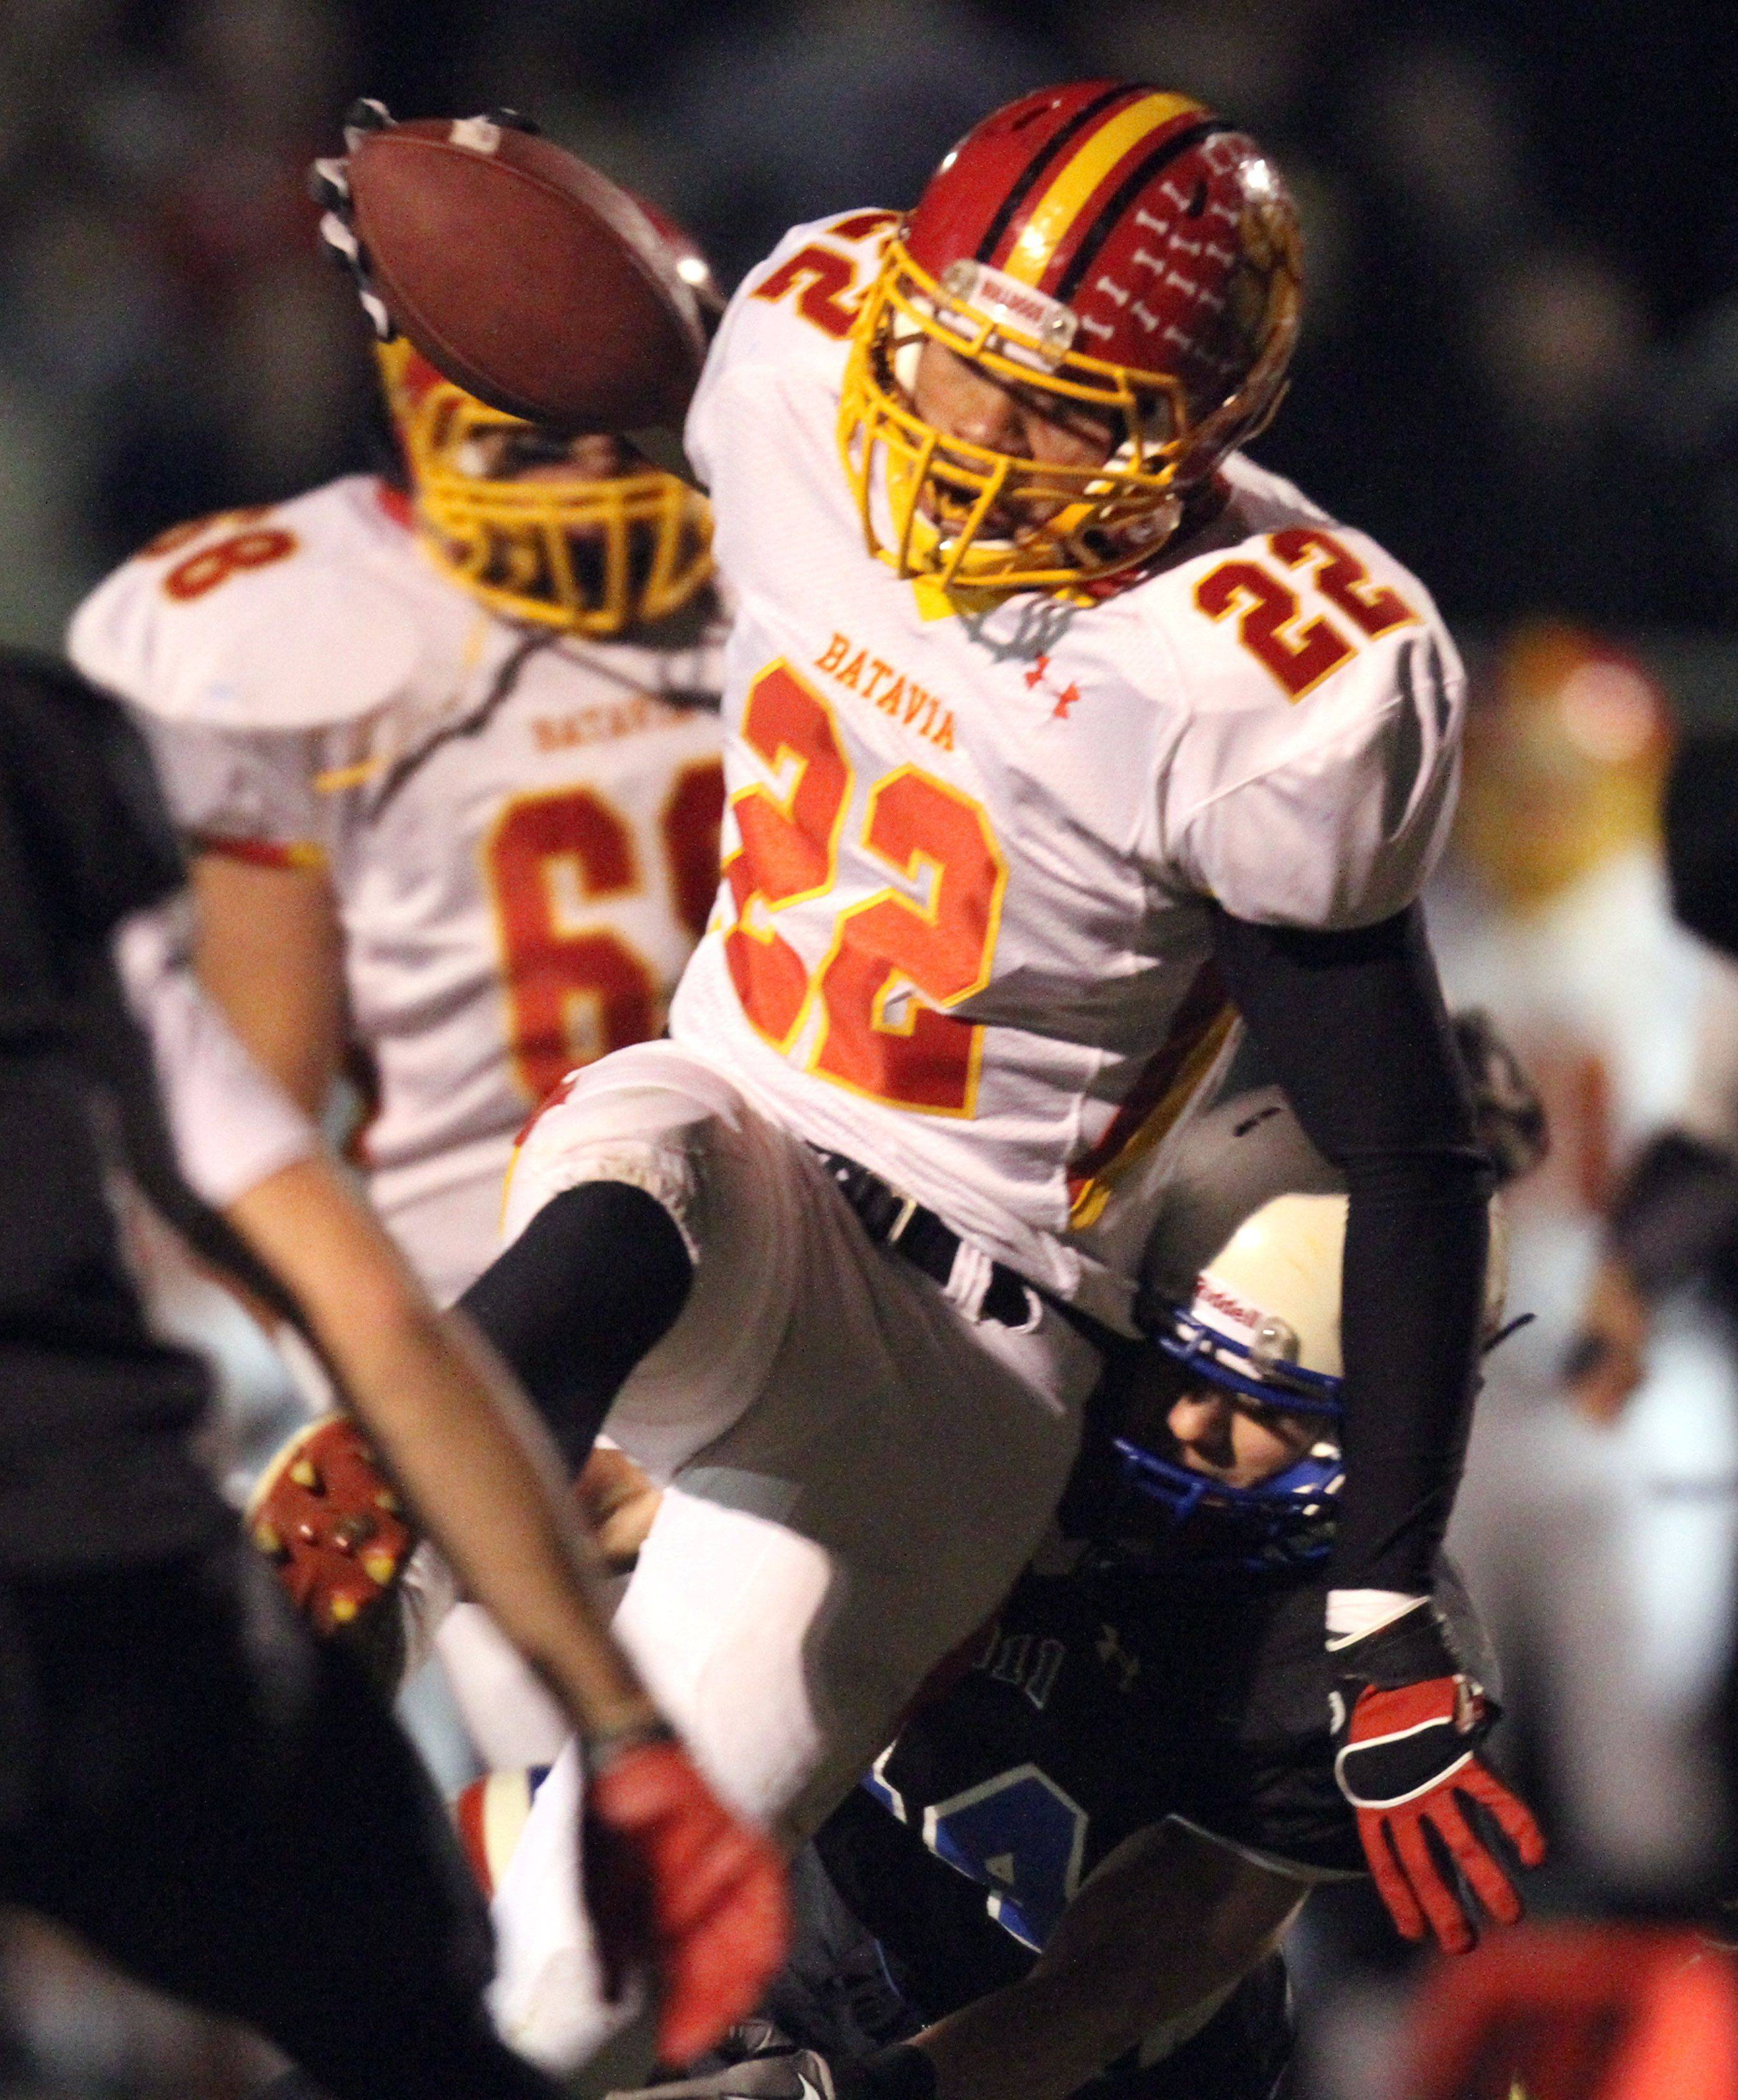 Batavia running back Anthony Thielk leaps over Lakes defenders during the first half at Lakes on Saturday, November 12th.